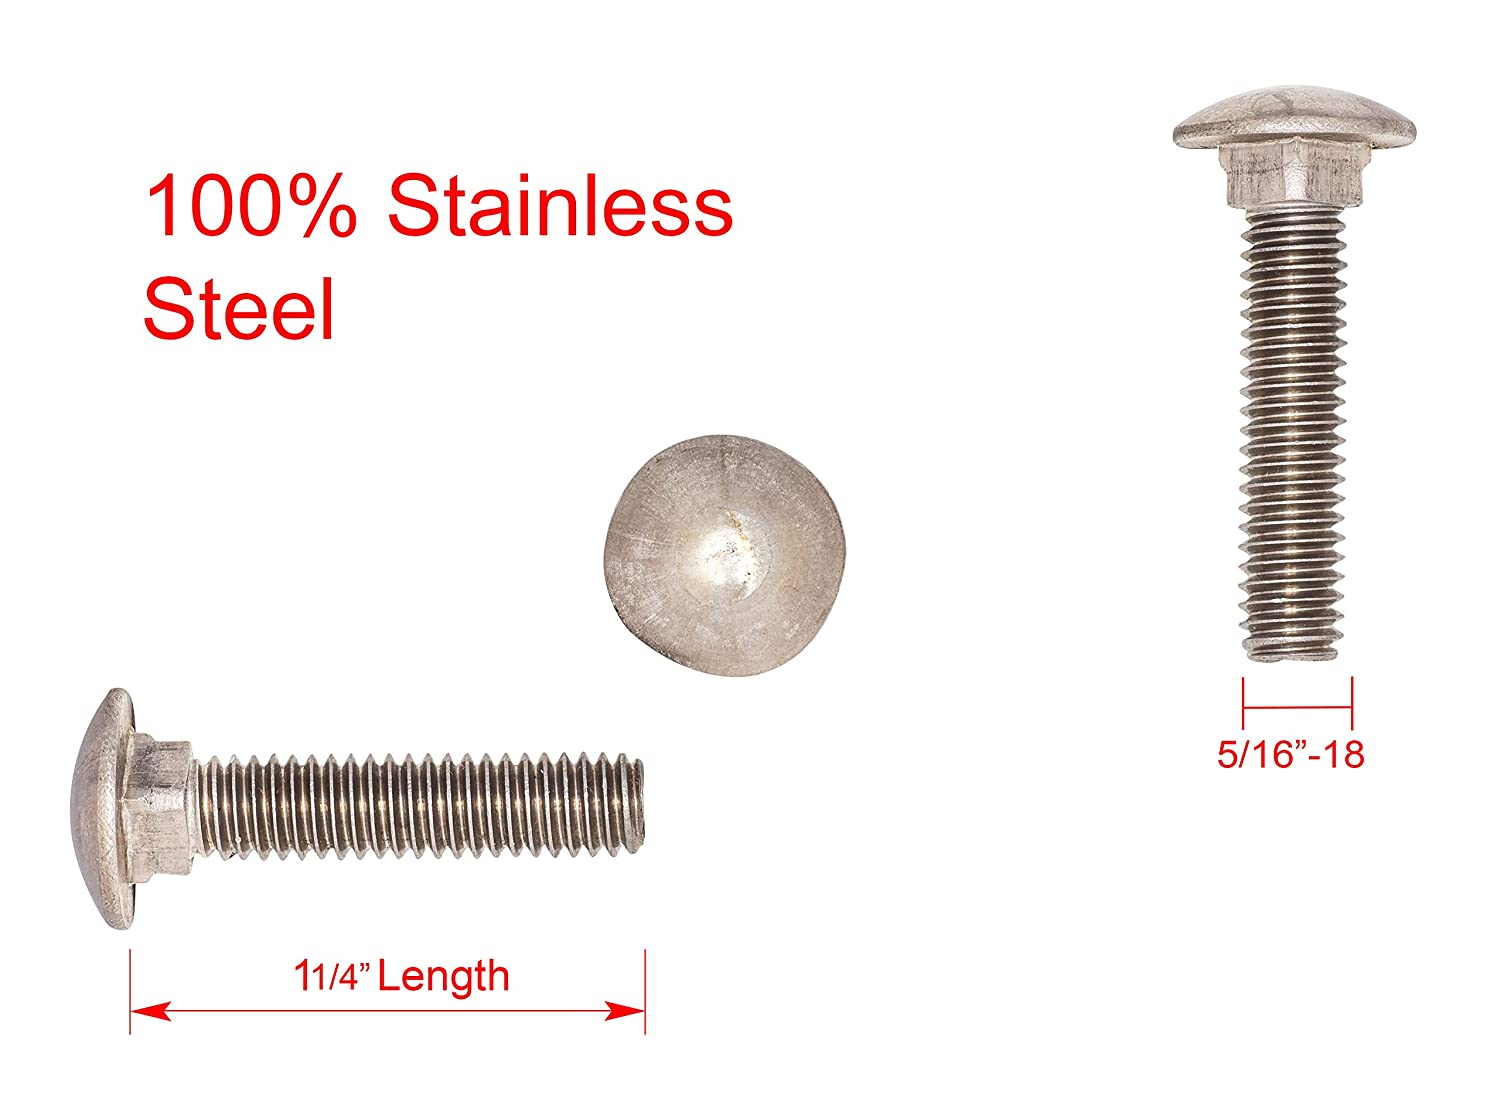 Good Holding Power in Different Materials Durable and Sturdy 10PCS 3//4-10 X 8 Carriage Bolts HOT Dipped Galvanized